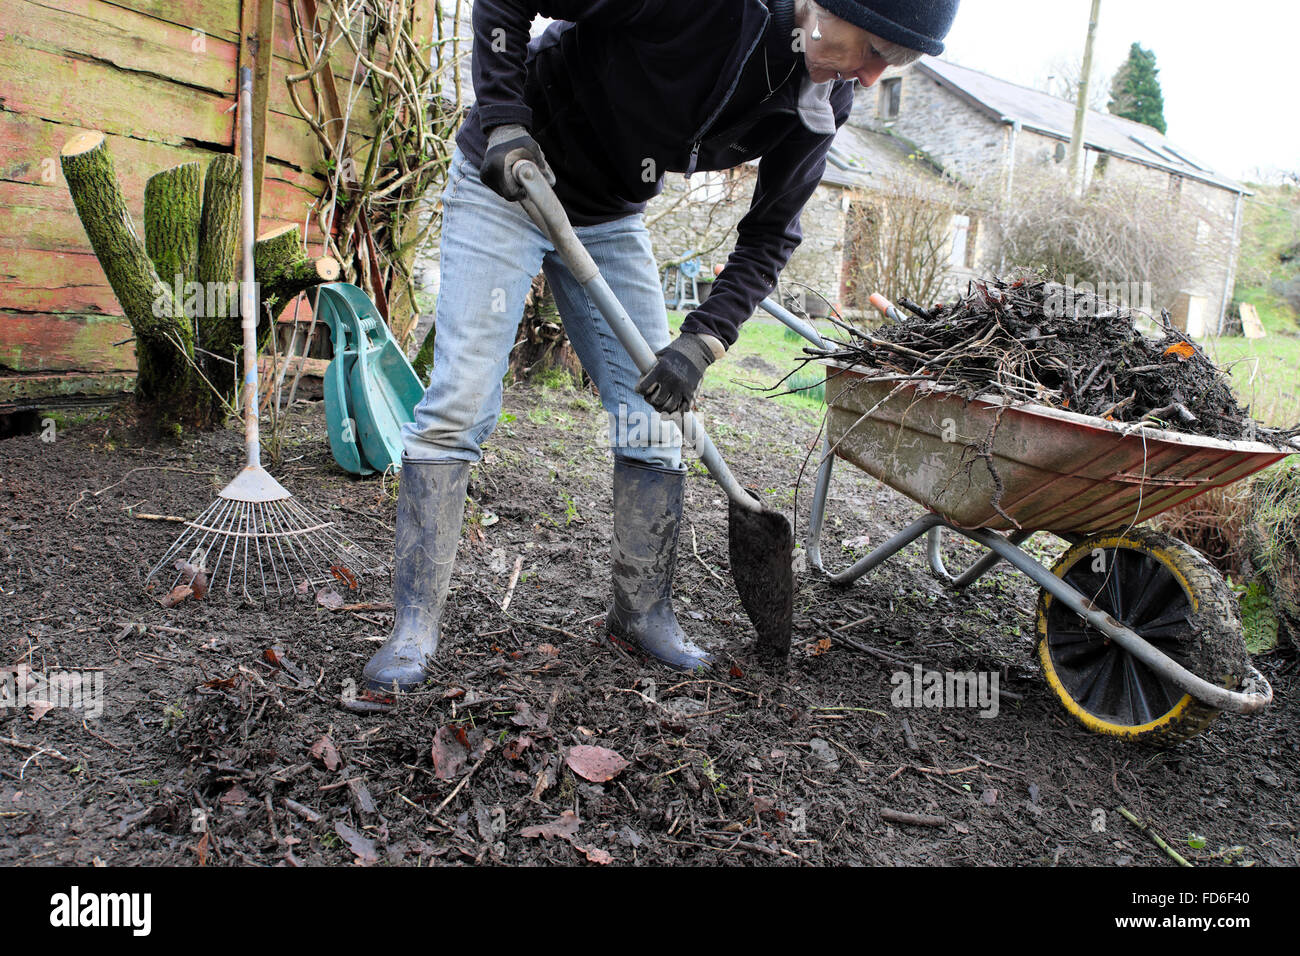 A senior woman tidying up the garden yard in preparation for spring in January winter Carmarthenshire Wales UK  - Stock Image